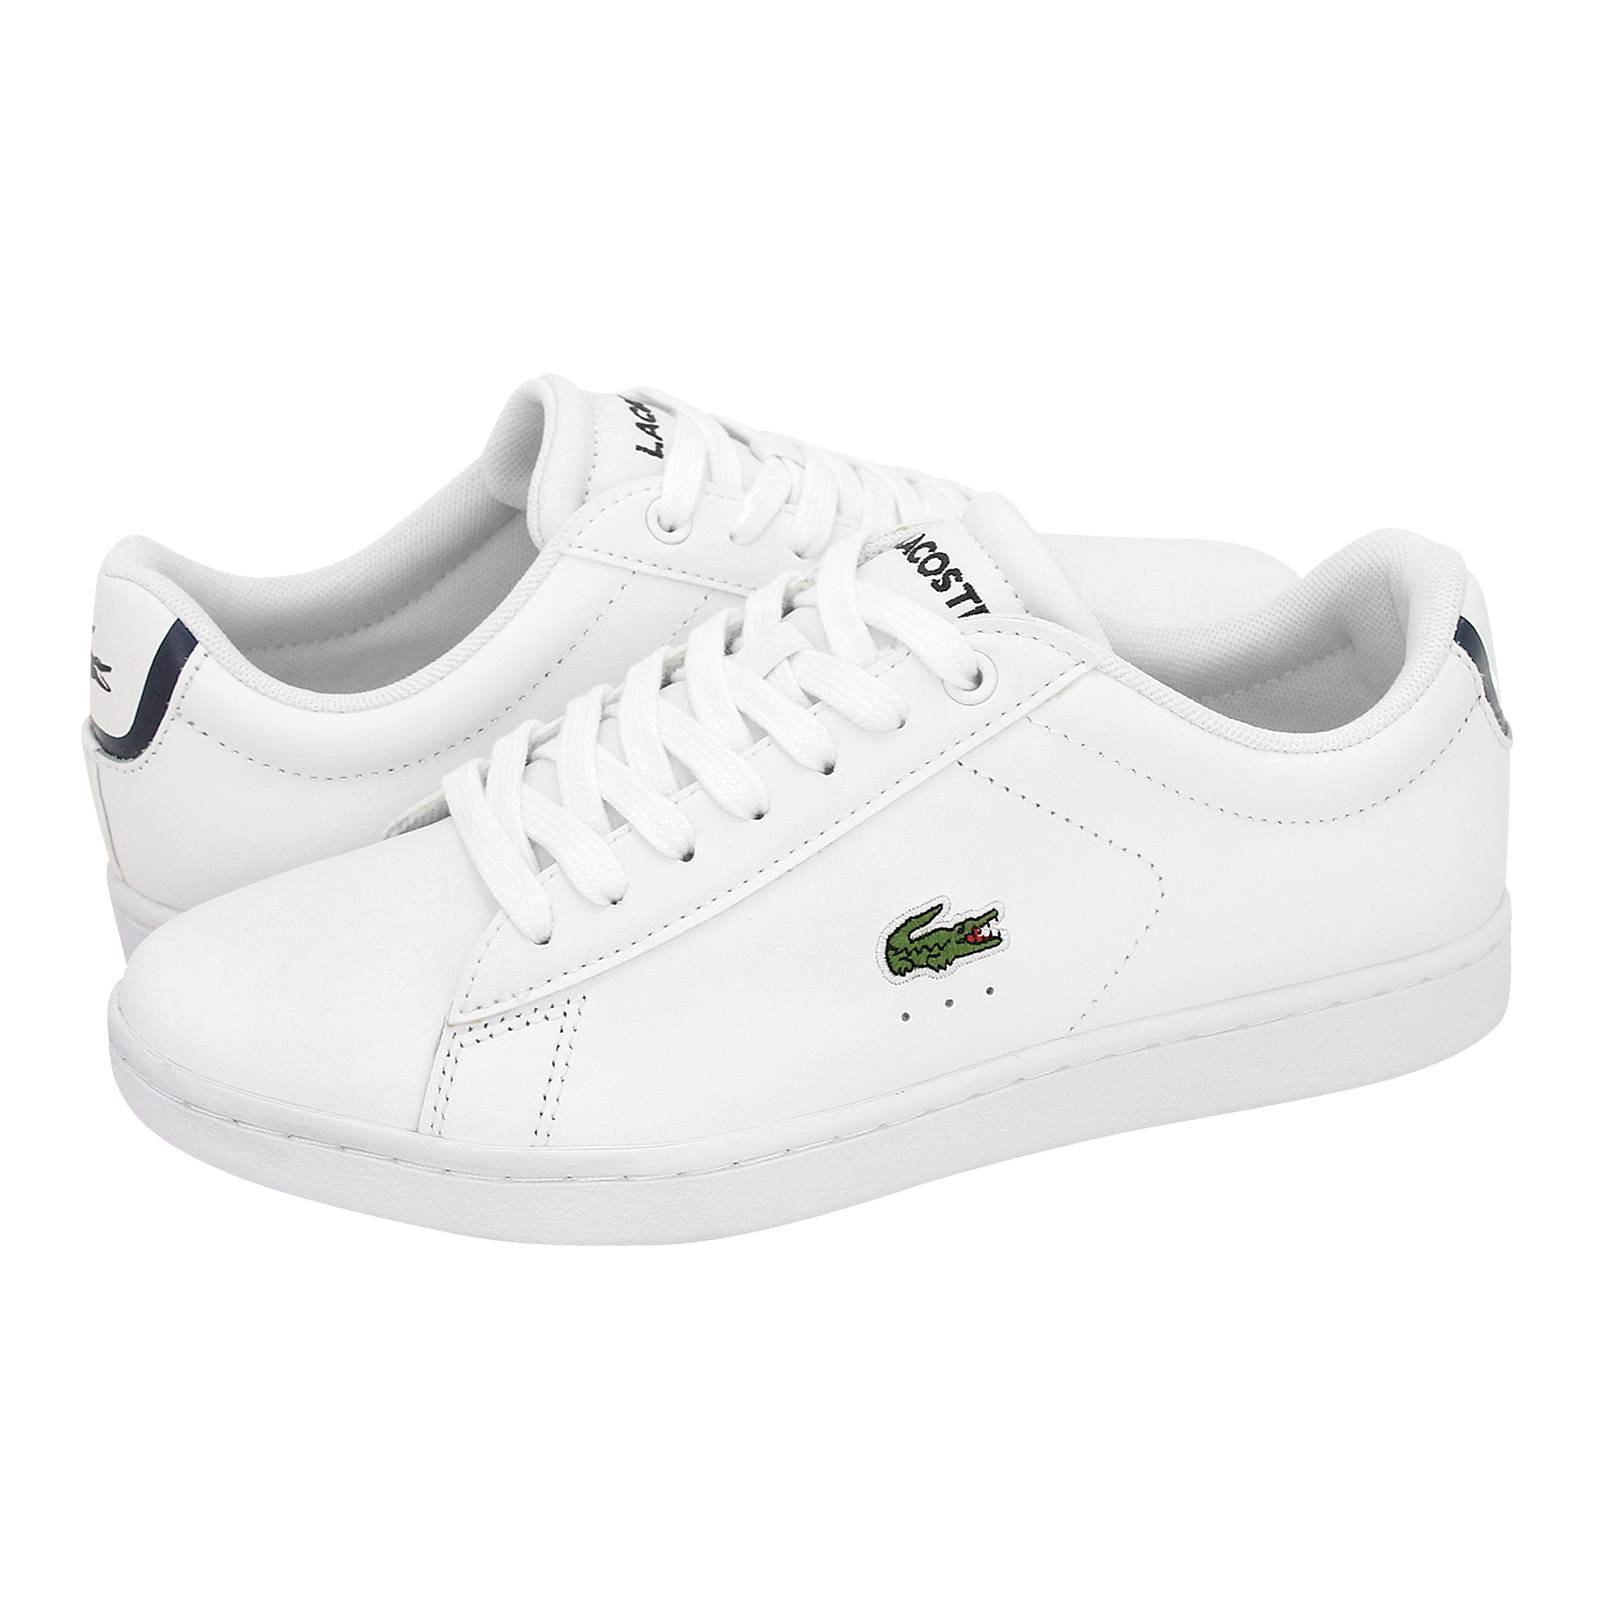 d01dceec3 Carnaby Evo BL 1 - Lacoste Women s casual shoes made of leather and ...